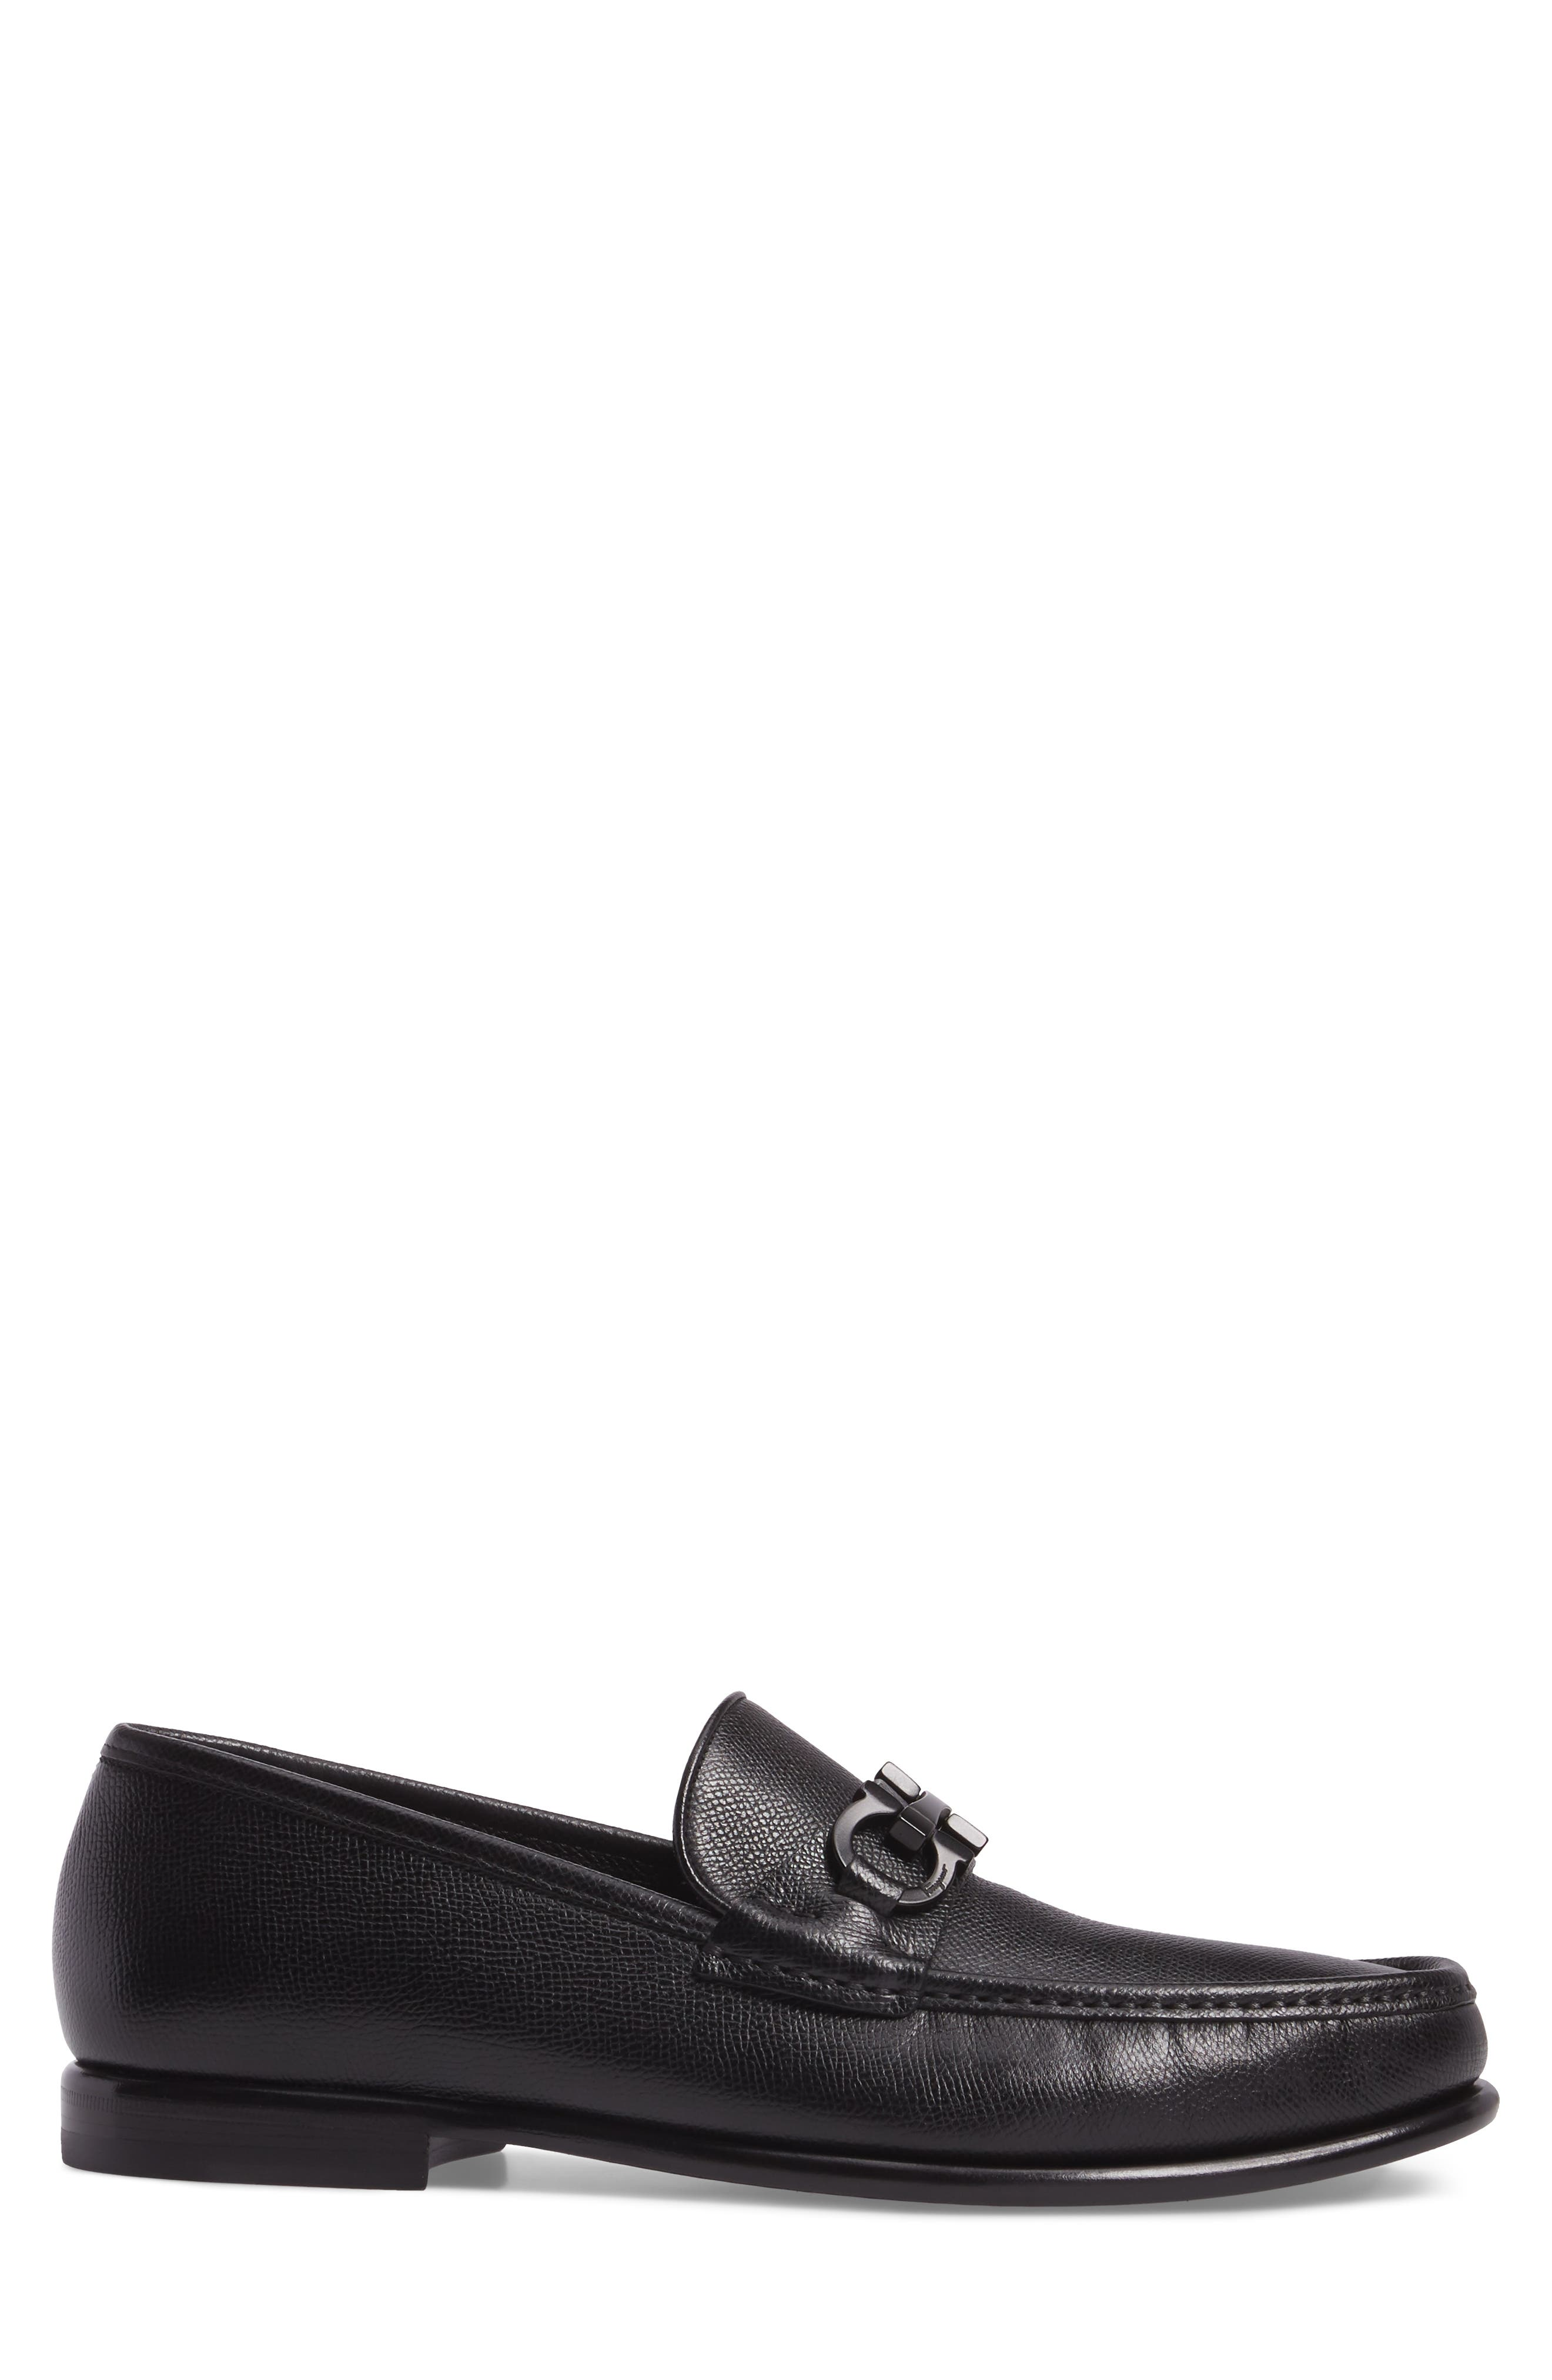 Crown Bit Loafer,                             Alternate thumbnail 3, color,                             Nero